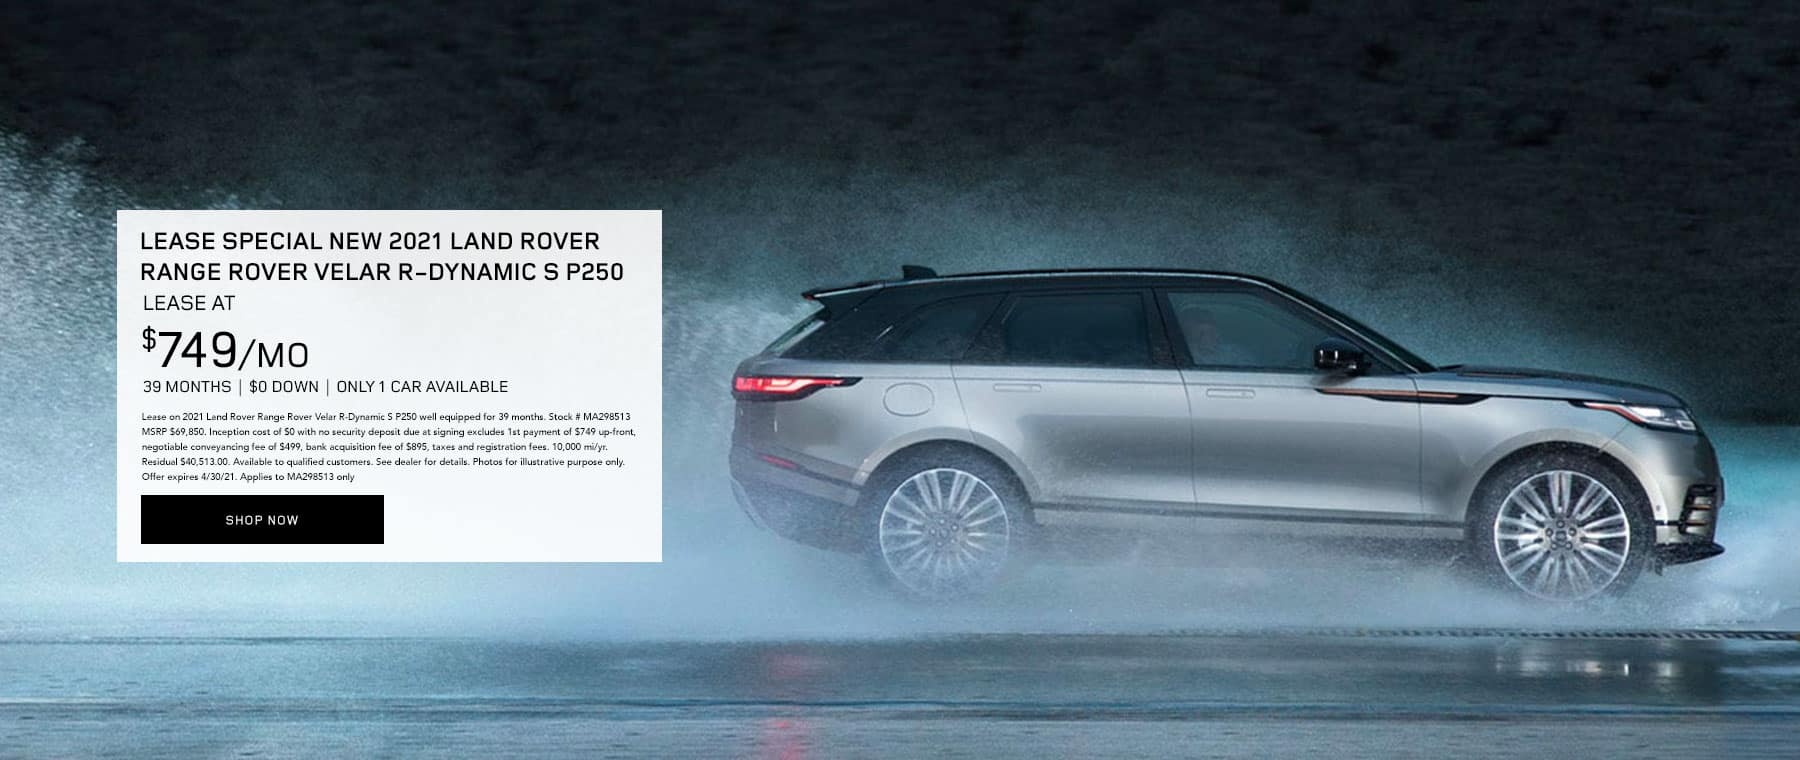 LEASE SPECIAL 2021 Land Rover Range Rover Velar R-Dynamic S P250 – only 1 car available